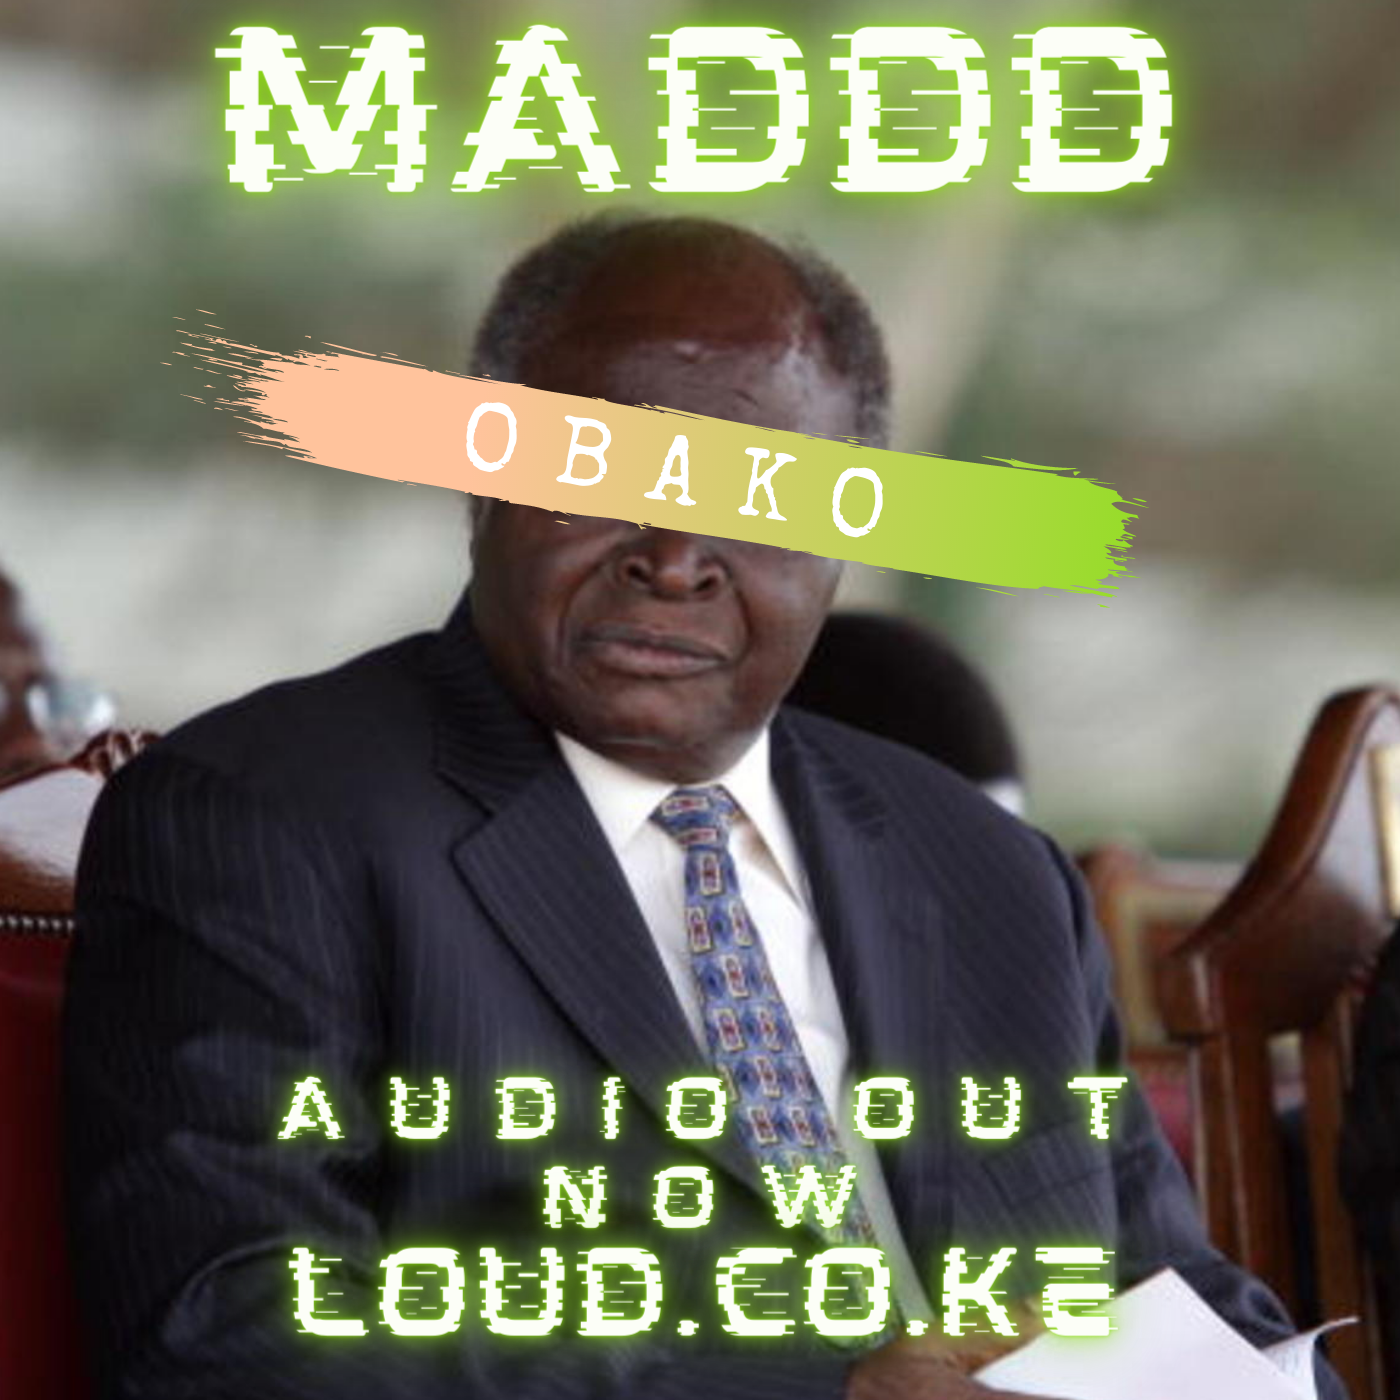 Cover art for Obako by Maddd